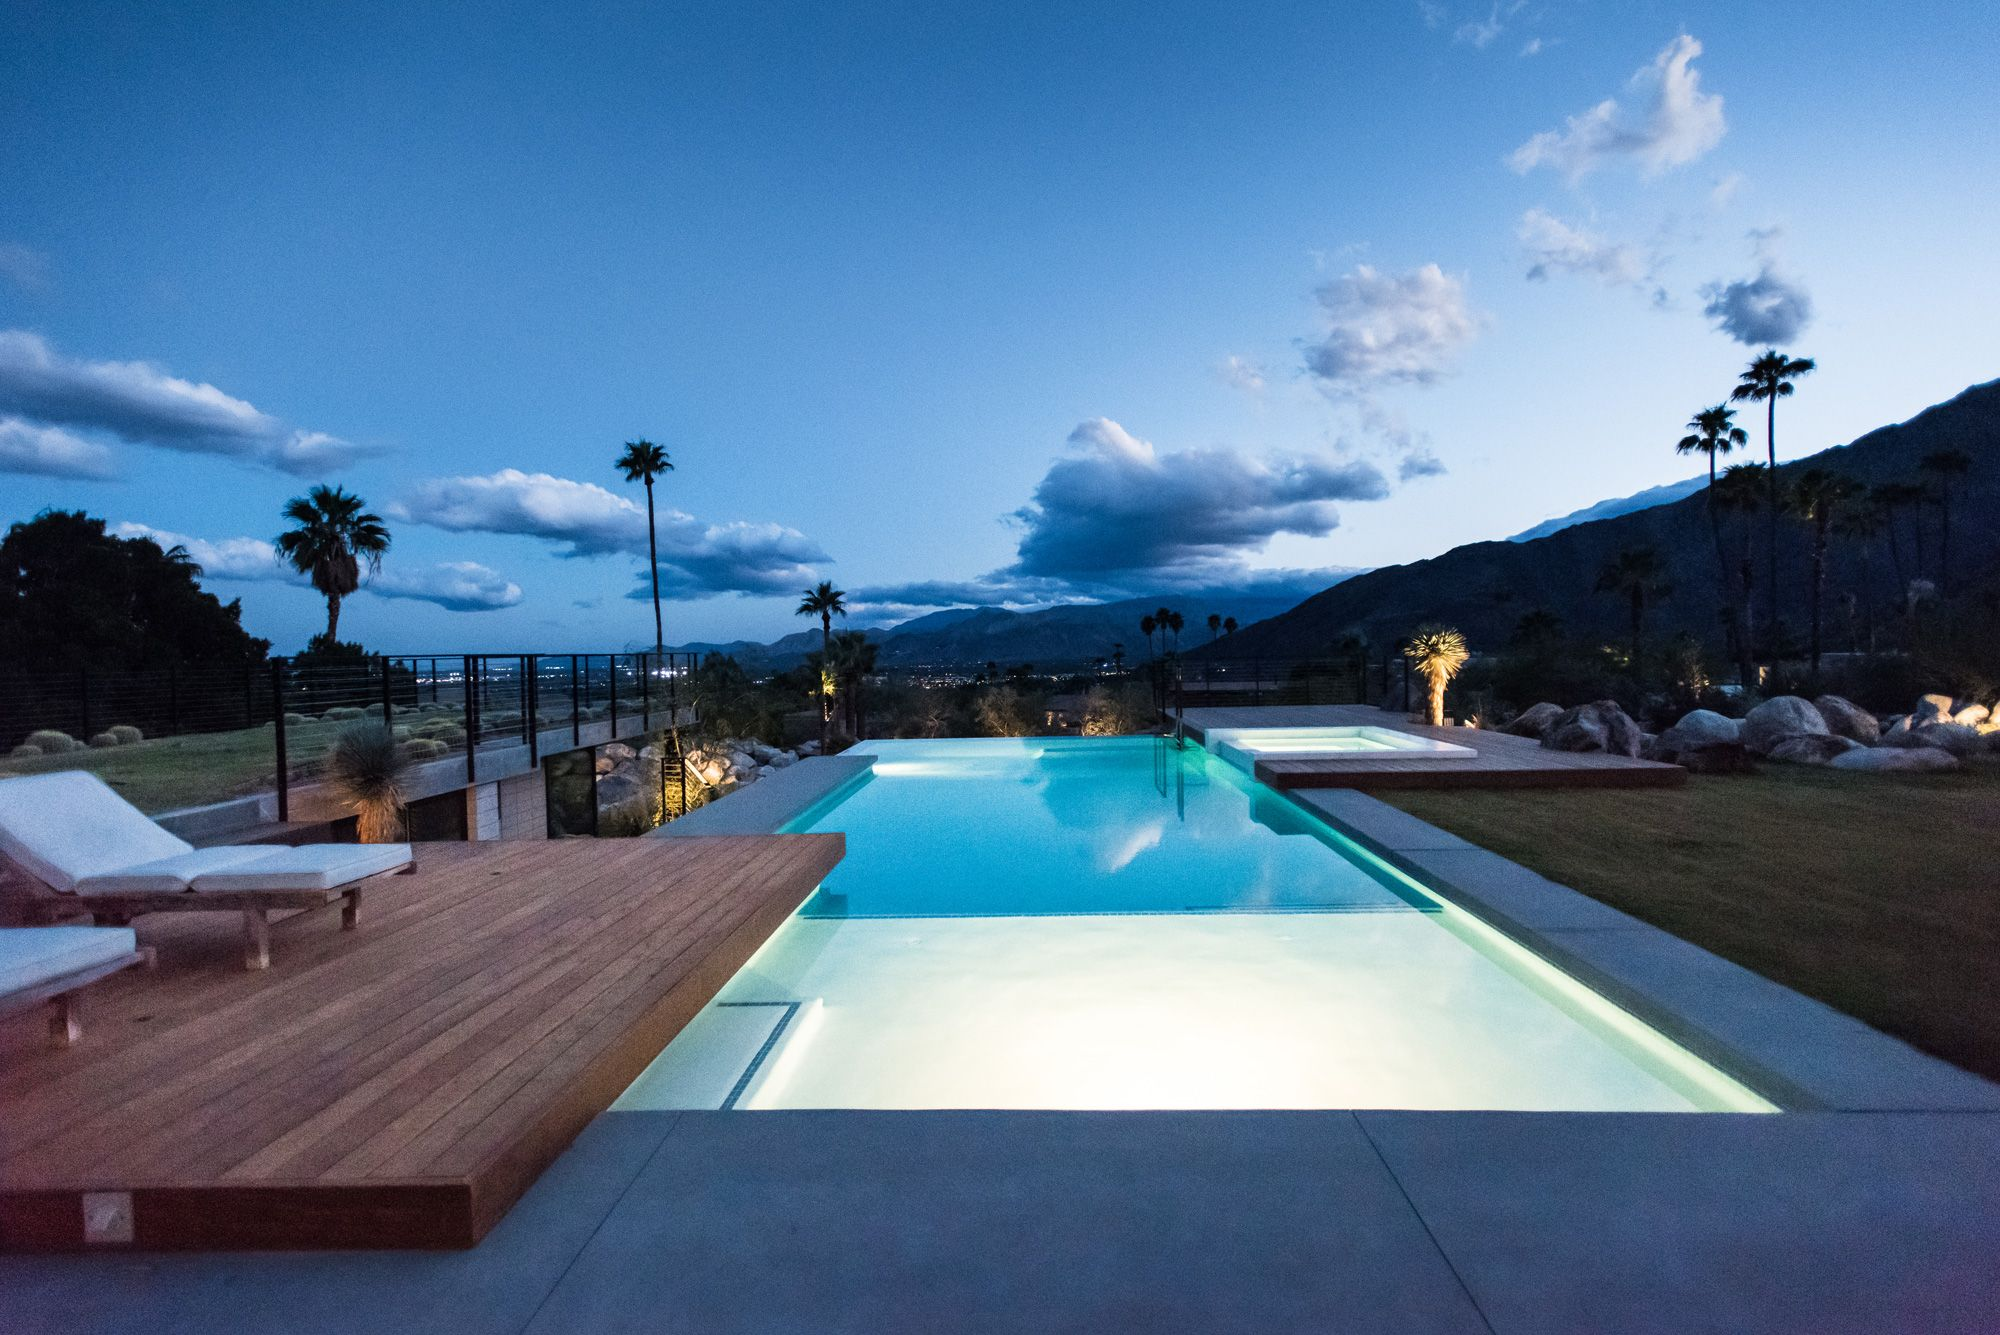 Pool - Schnabel Family Retreat - Studio Ar&D Architects